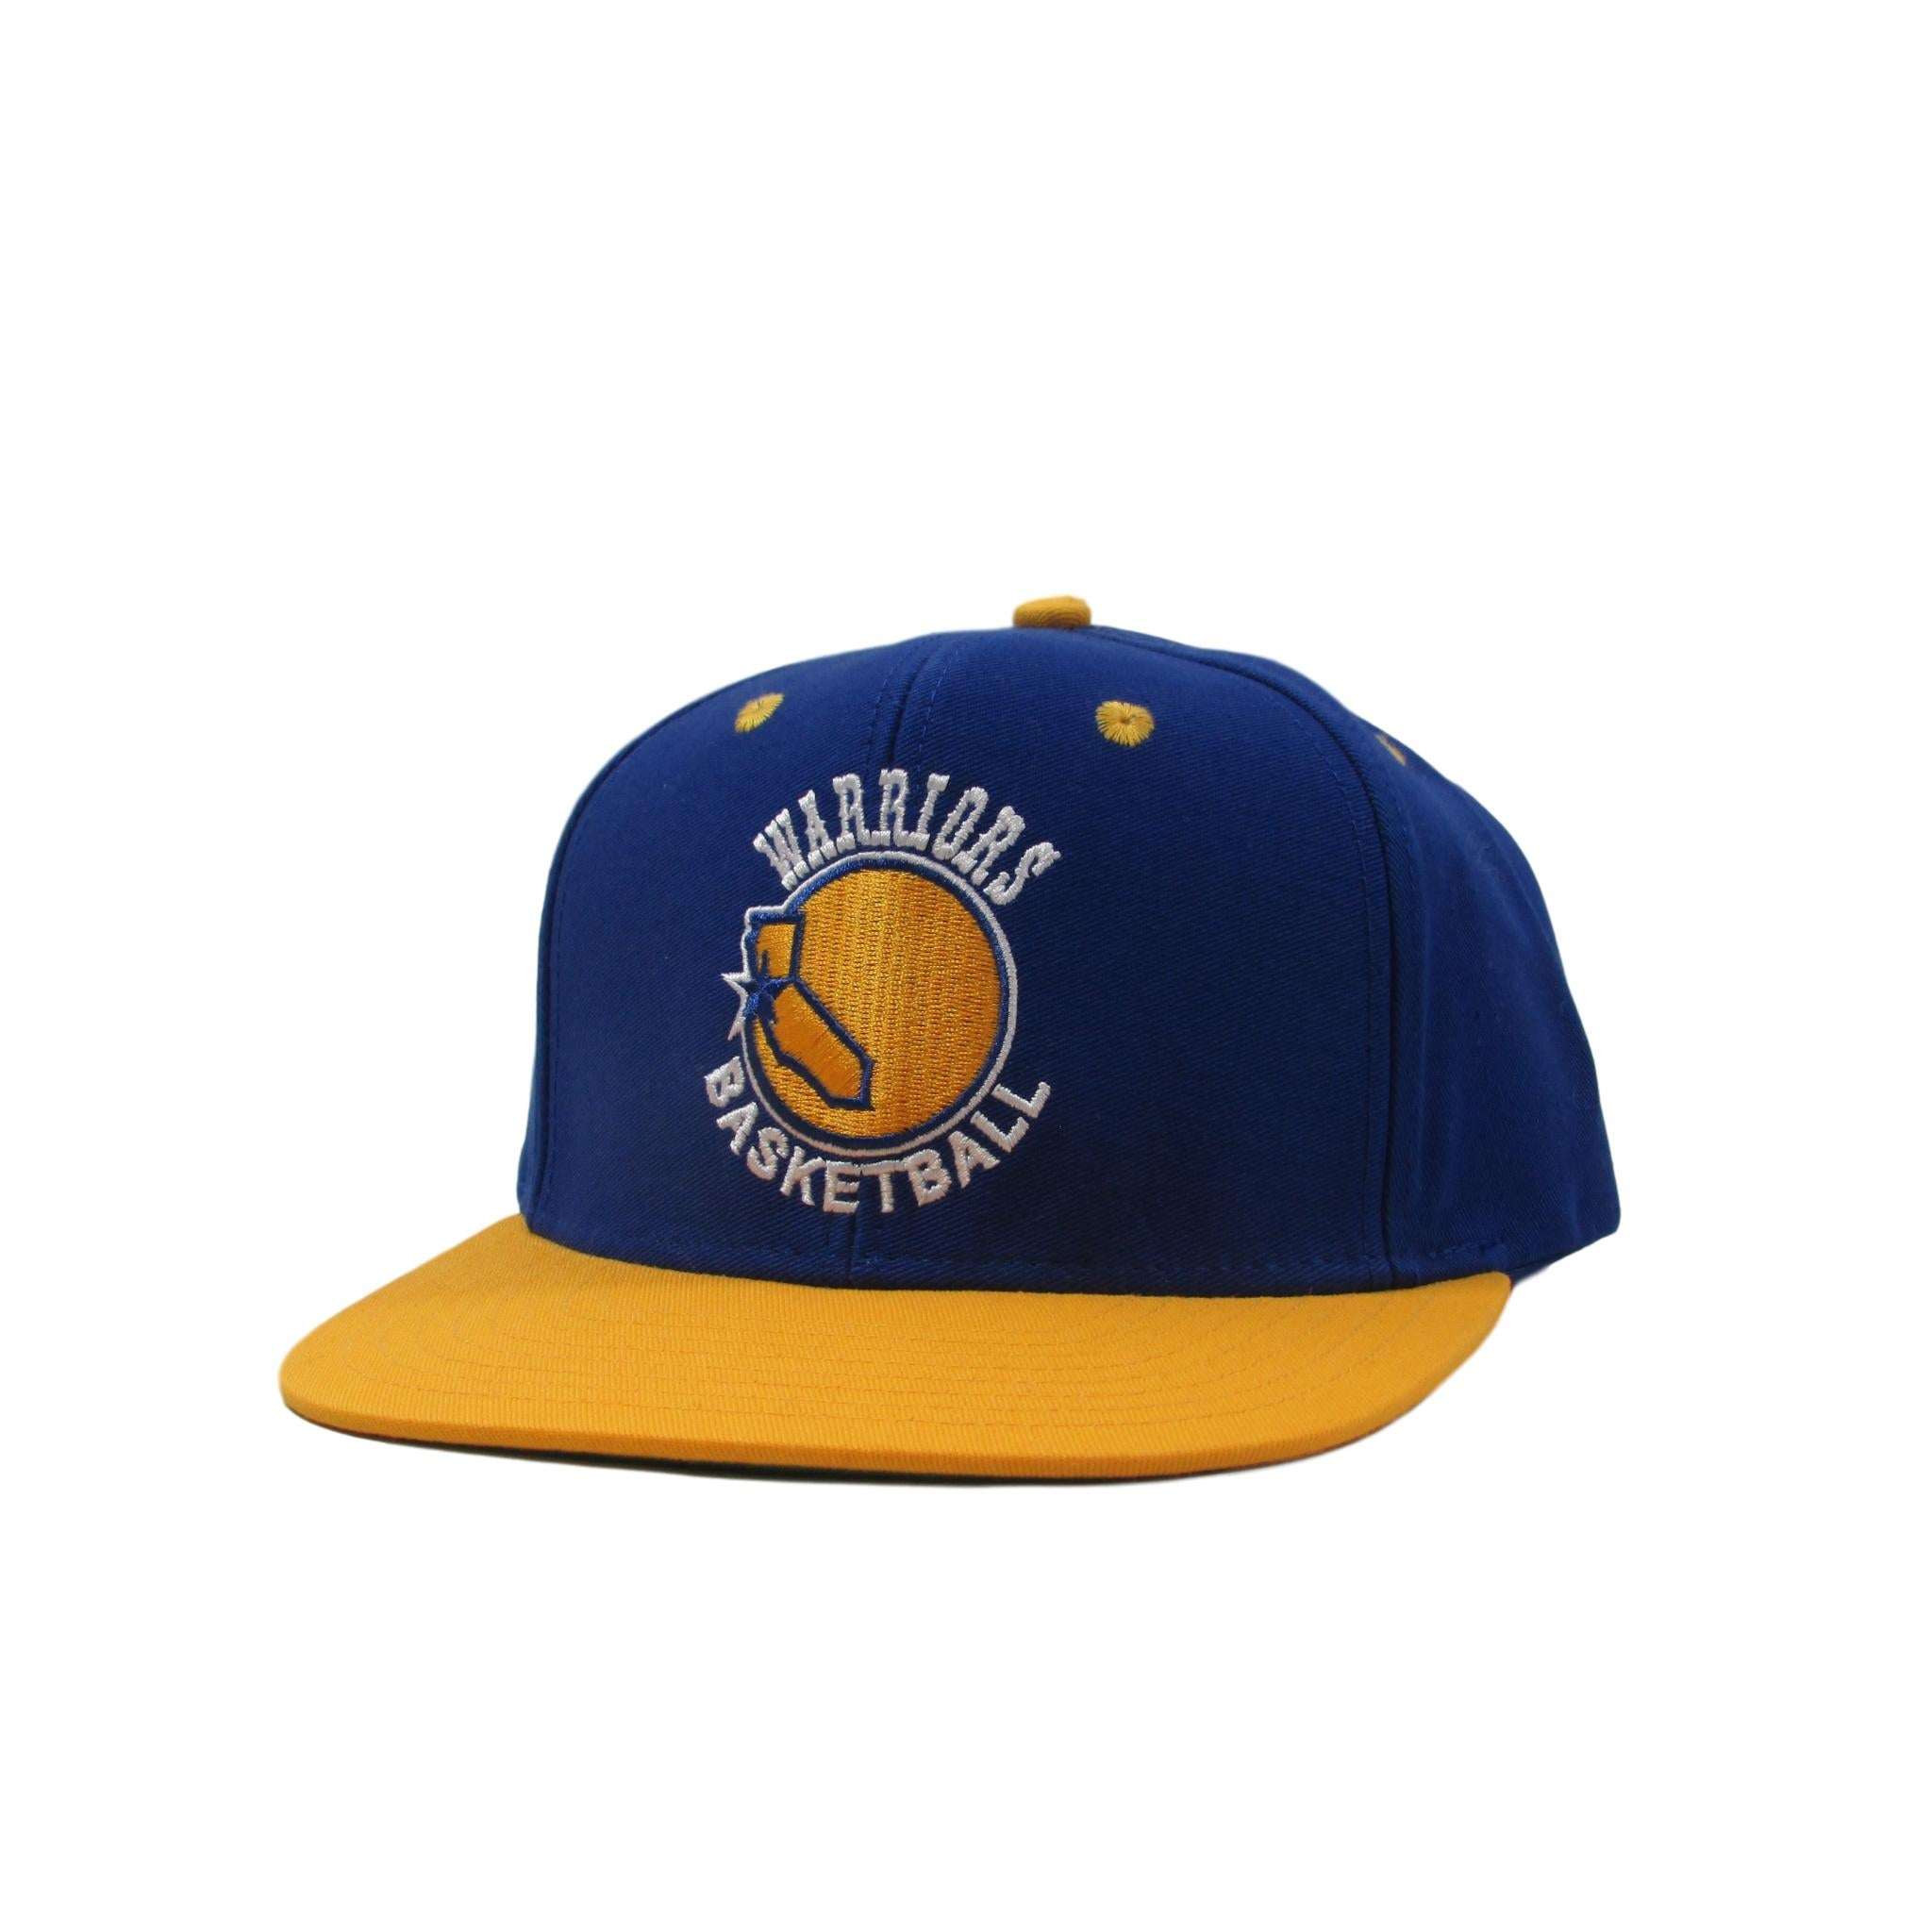 Golden State Warriors Classic Basketball Snapback Hat Adidas